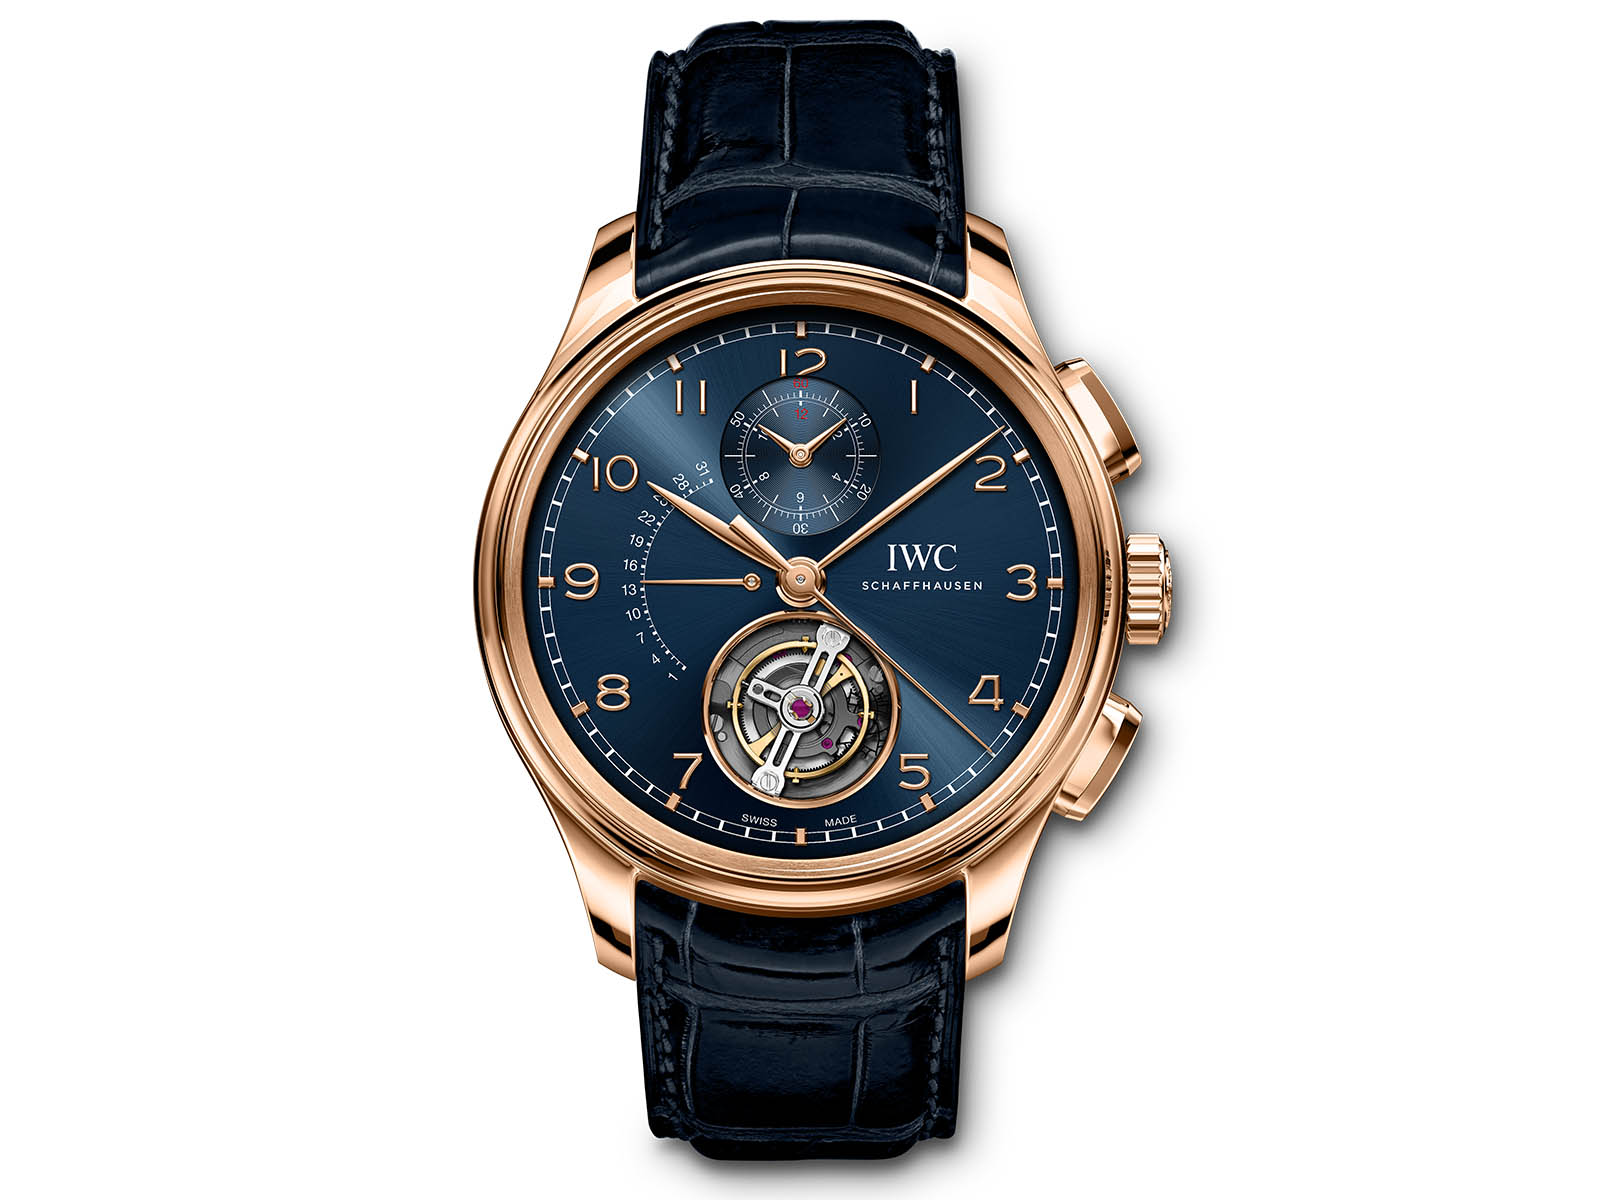 iw394005-iwc-schaffhausen-portugieser-complications-watches-wonders-2020-1.jpg